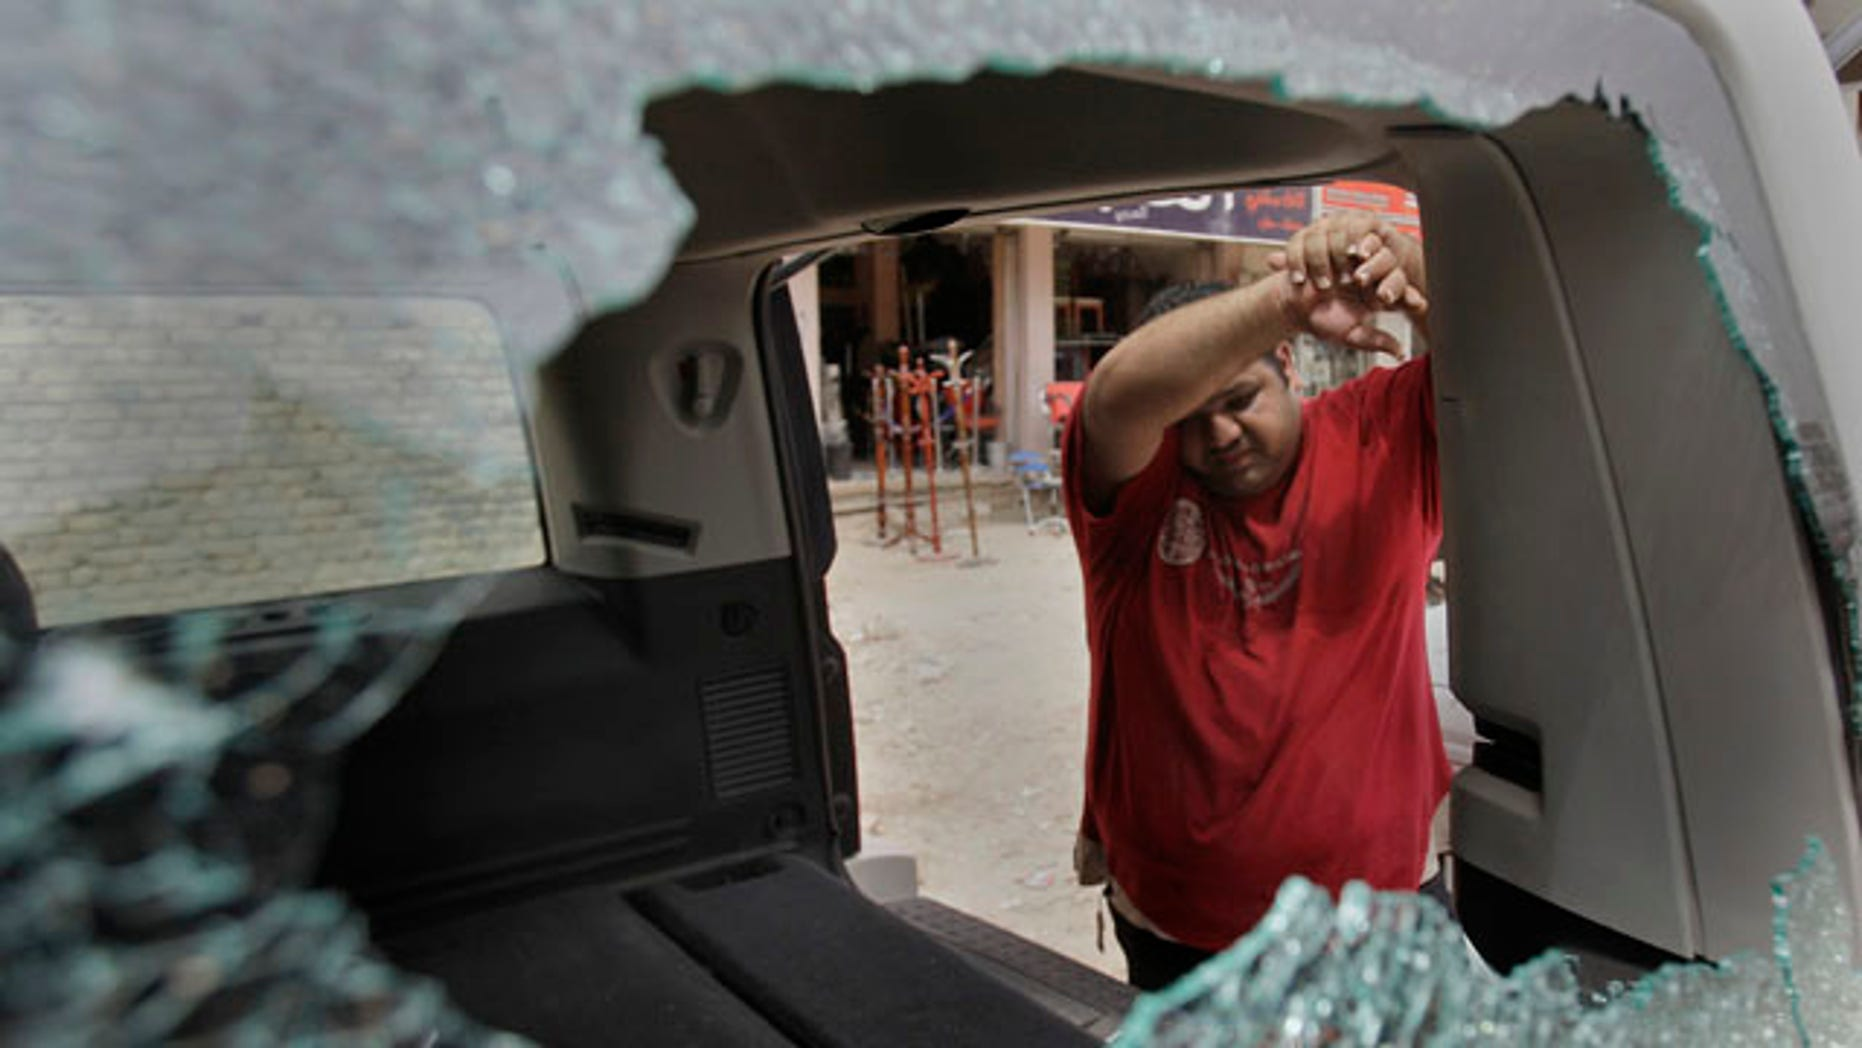 An Iraqi man inspects his damaged car at the site of a roadside bomb attack targeting a police patrol, killing and wounding a few civilians, police said, in central Baghdad, Iraq, Thursday, May 5, 2011. (AP Photo/Khalid Mohammed)